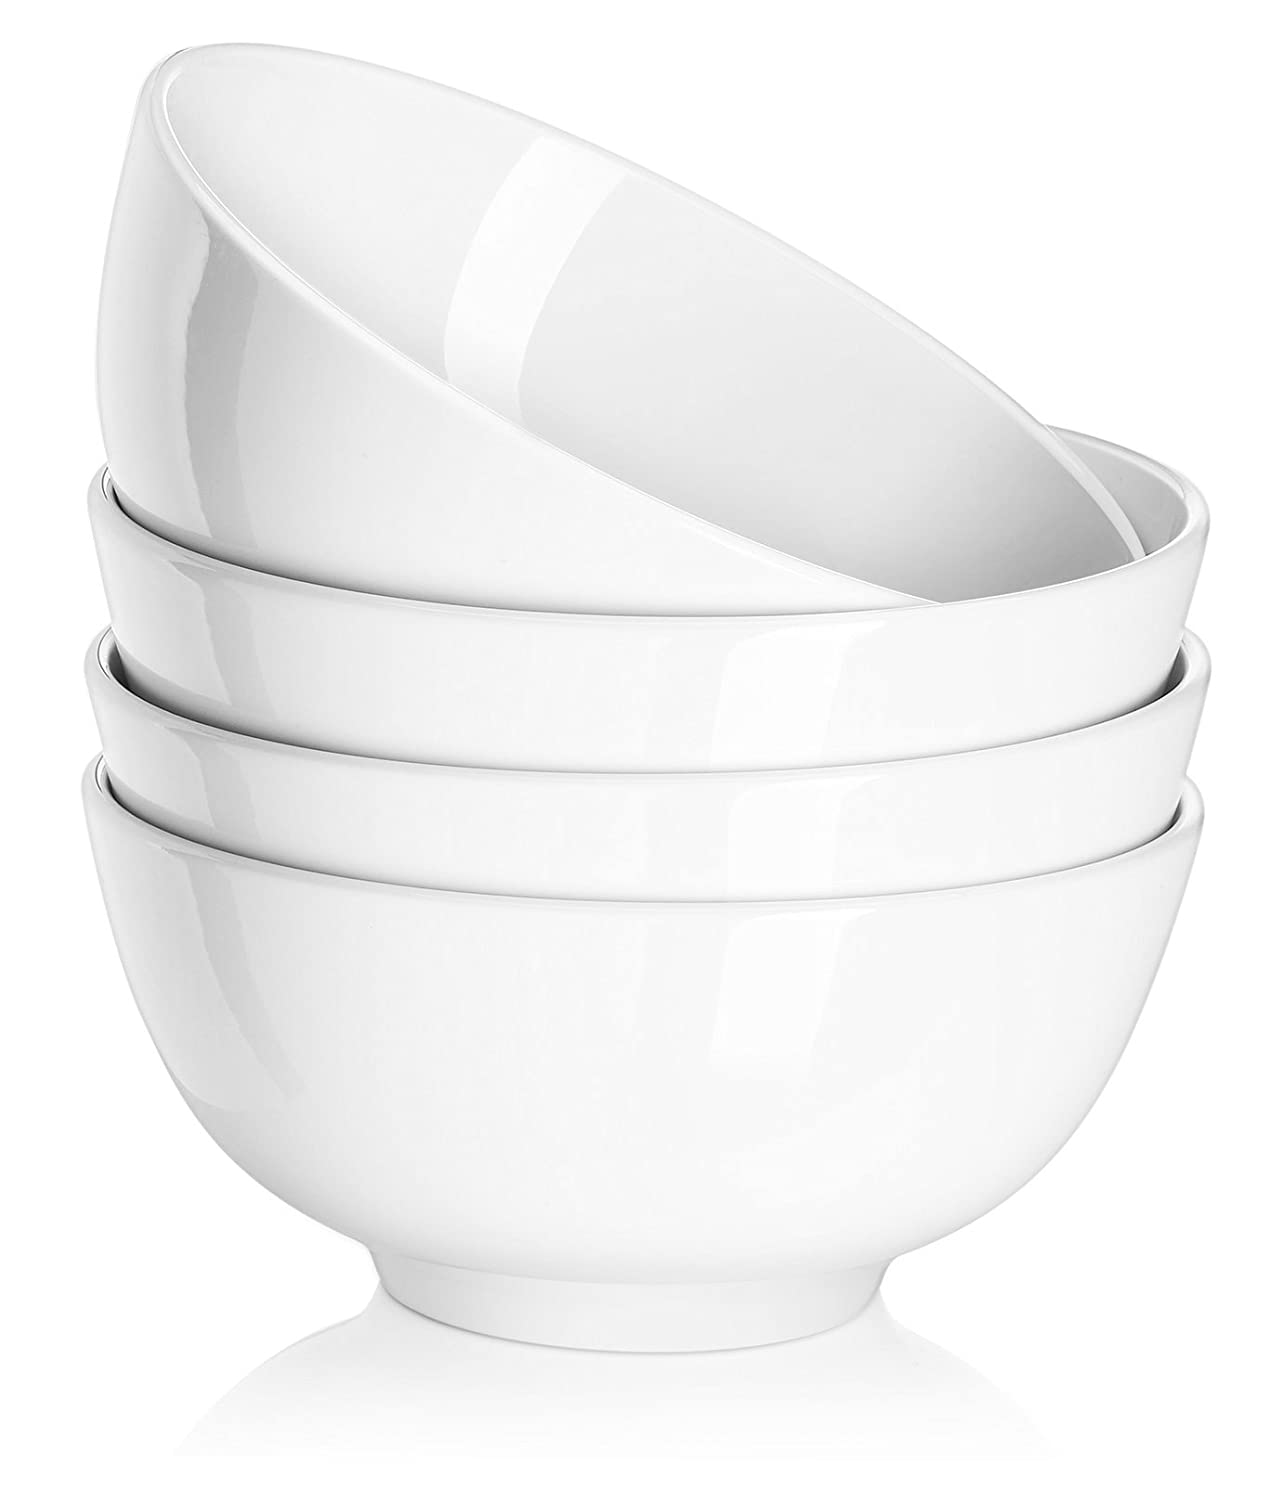 Dowan Ceramics Soup/cereal Bowl, 4.5-inch Winter Frost White (Set of 8) Sihai 010101150514014